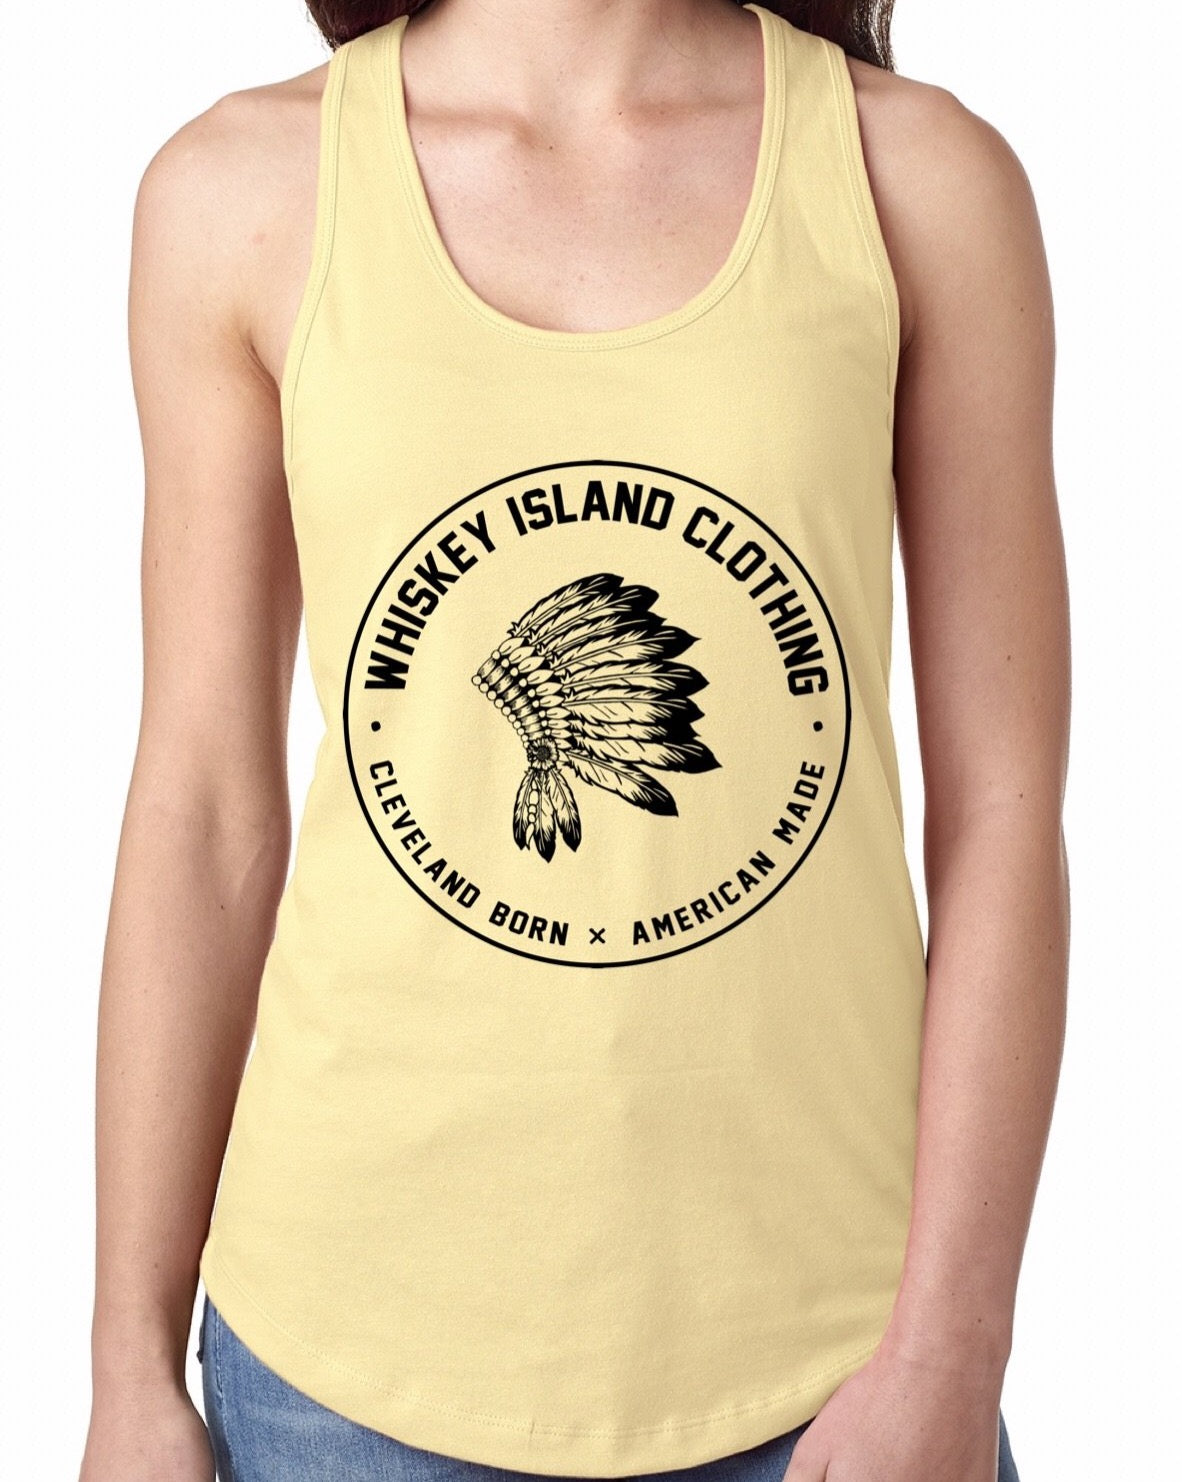 Whiskey Island Classic Yellow Racerback - Whiskey Island Clothing